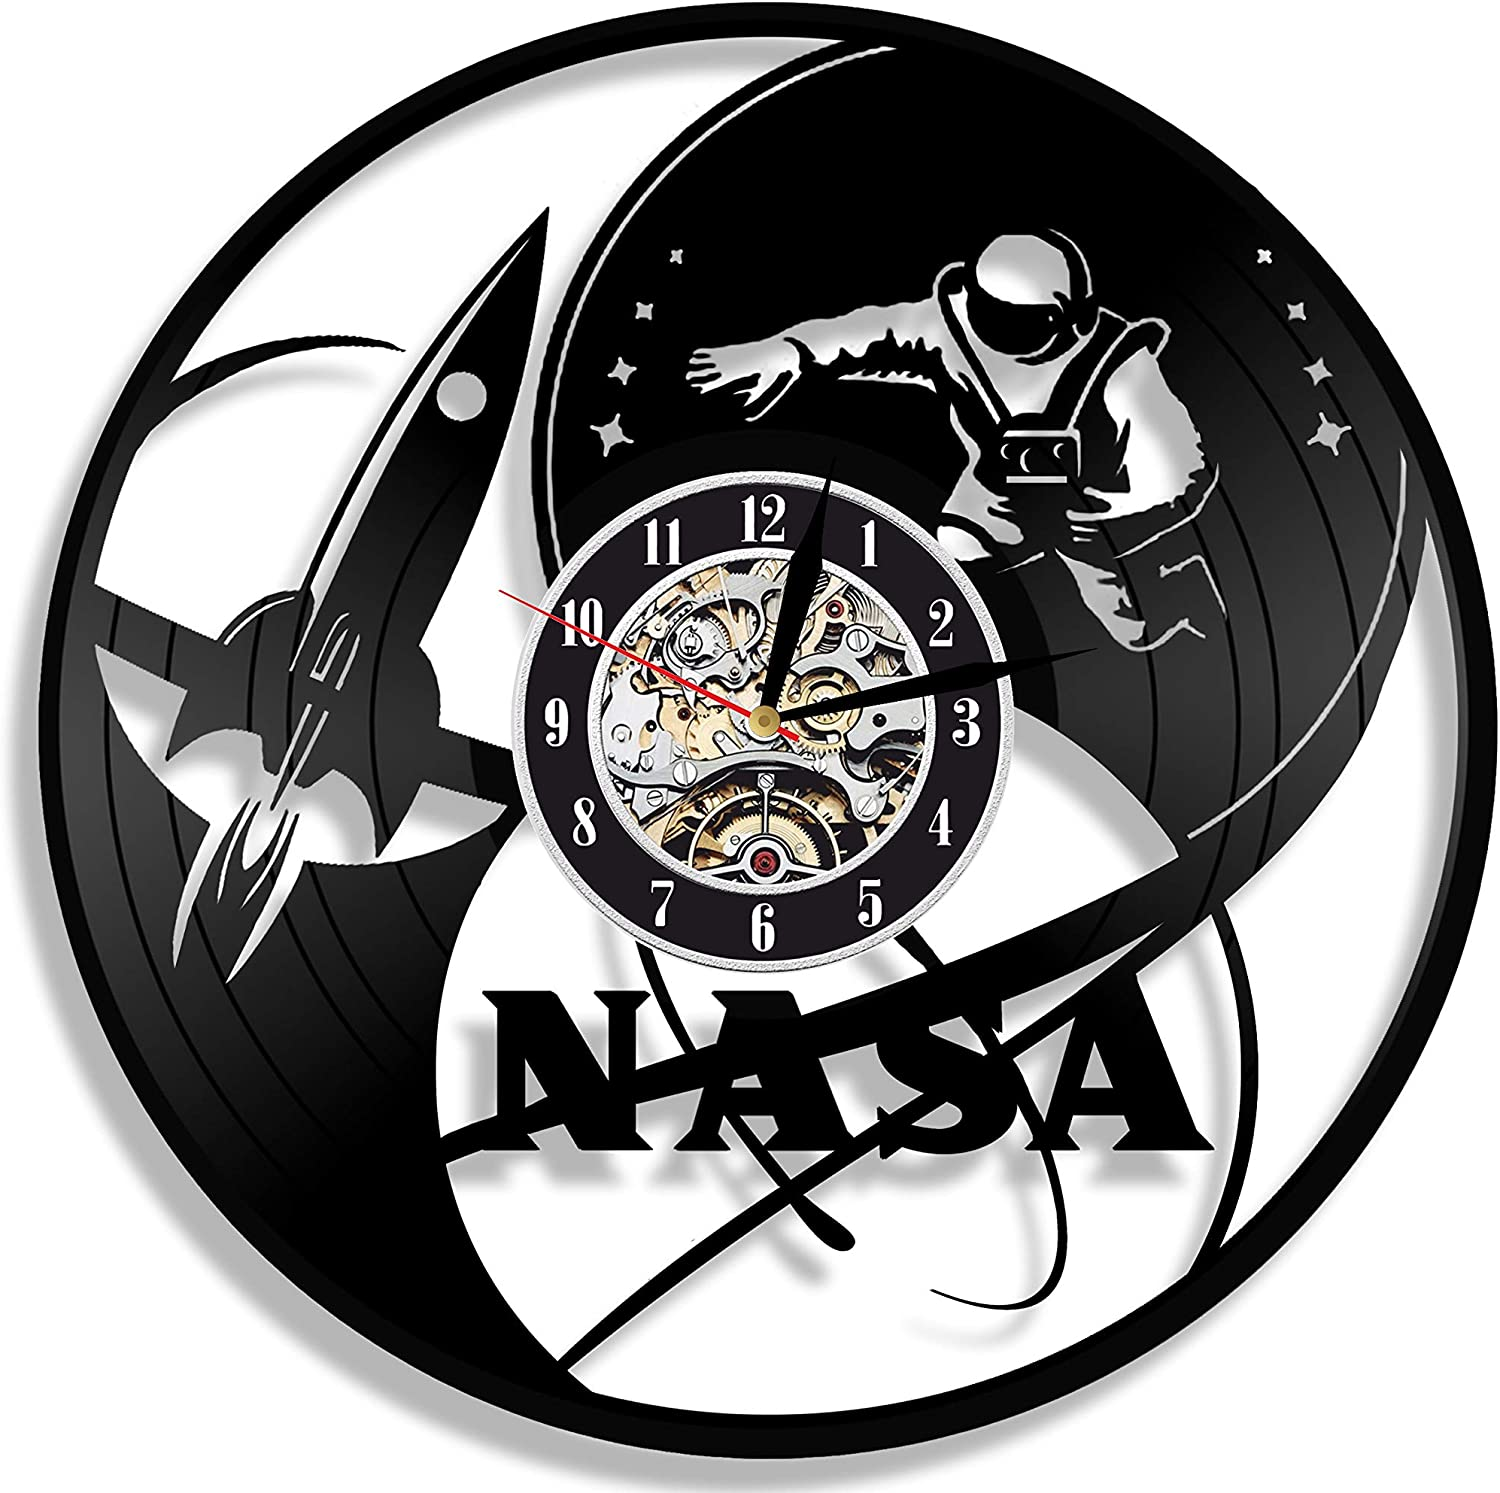 Levescale - NASA Vinyl Wall Clock - Exclusive Space Design - Perfect Science Gift for Teacher, Scientist, Man Or Woman - Decoration for Classrom, Office - Aero Shuttle